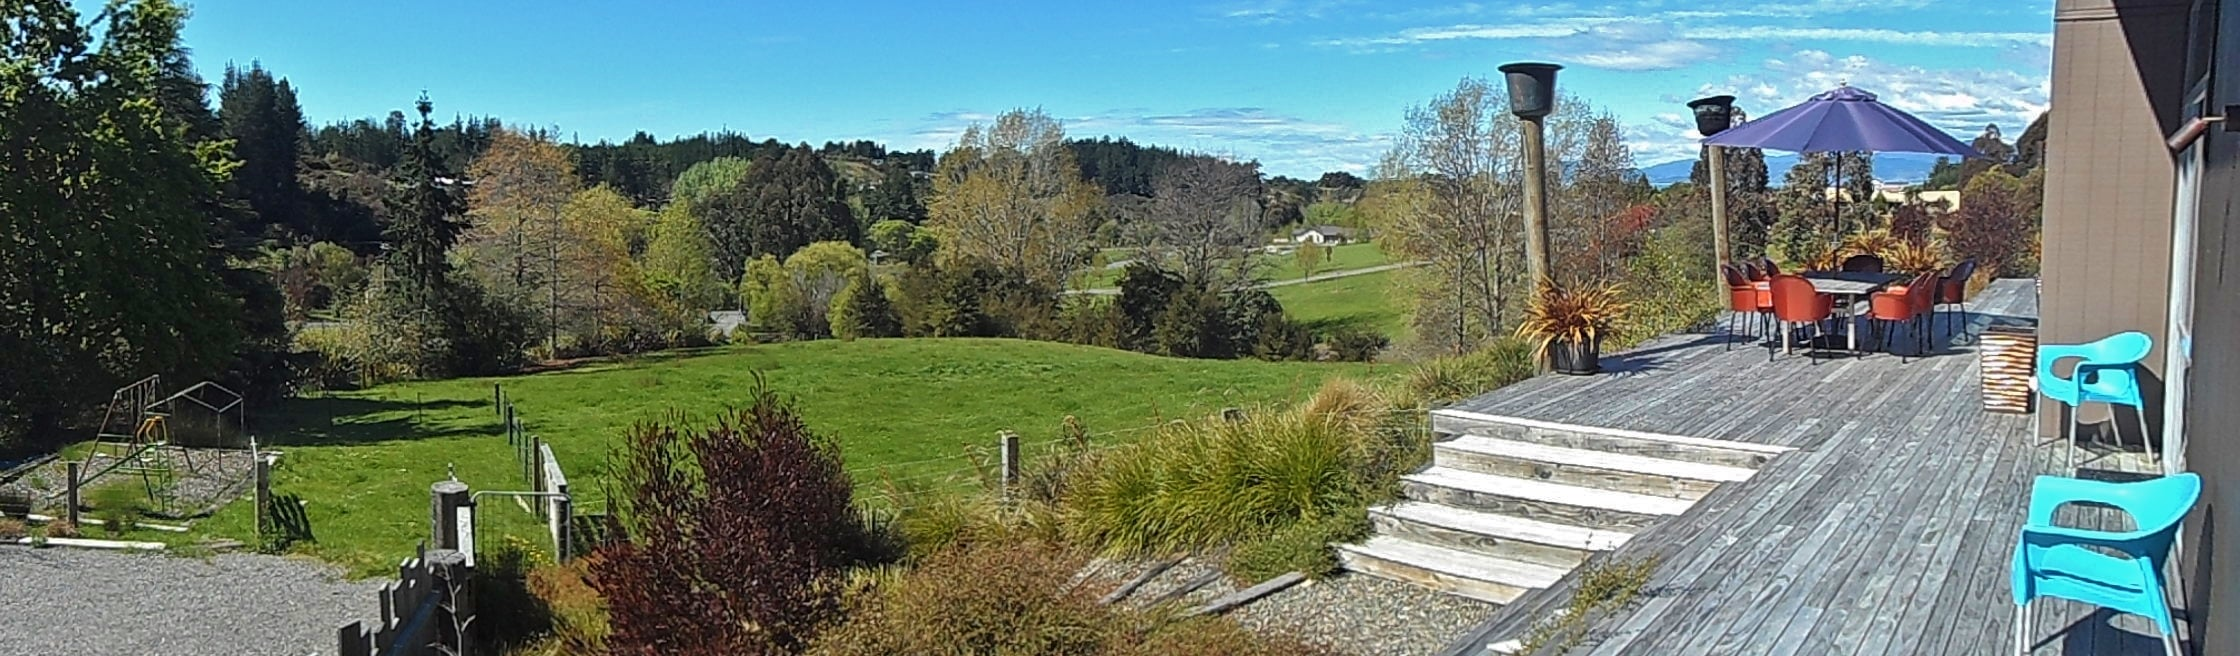 Copper-Gate-deck-panorama-The-Gates-holiday-accommodation-Mapua-Nelson-Oct-2016